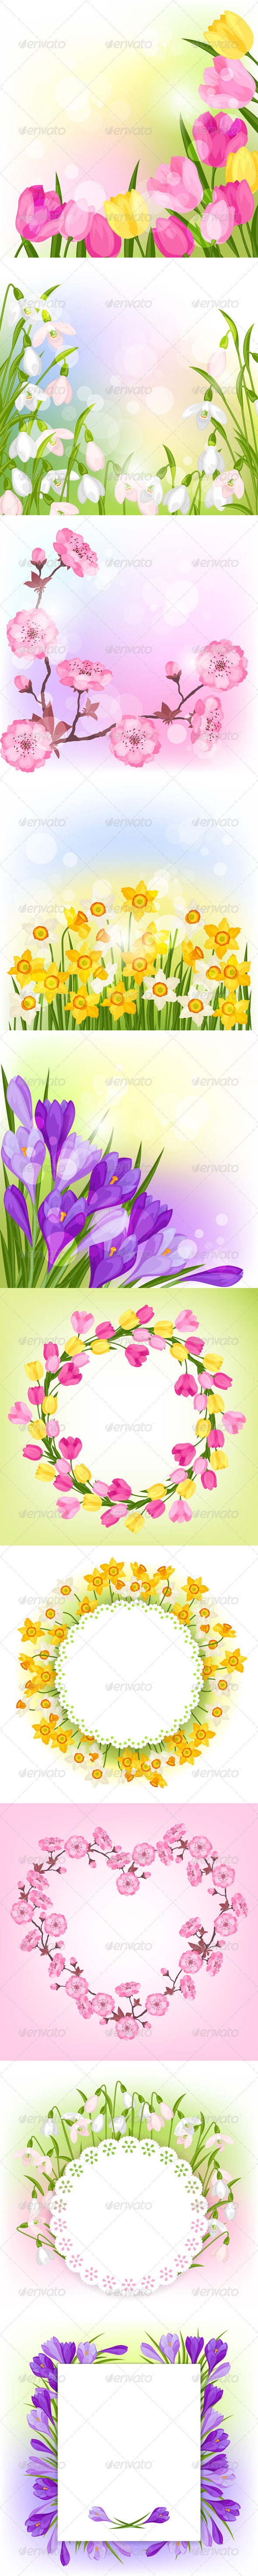 GraphicRiver Spring Flowers Natural Backgrounds 6626774